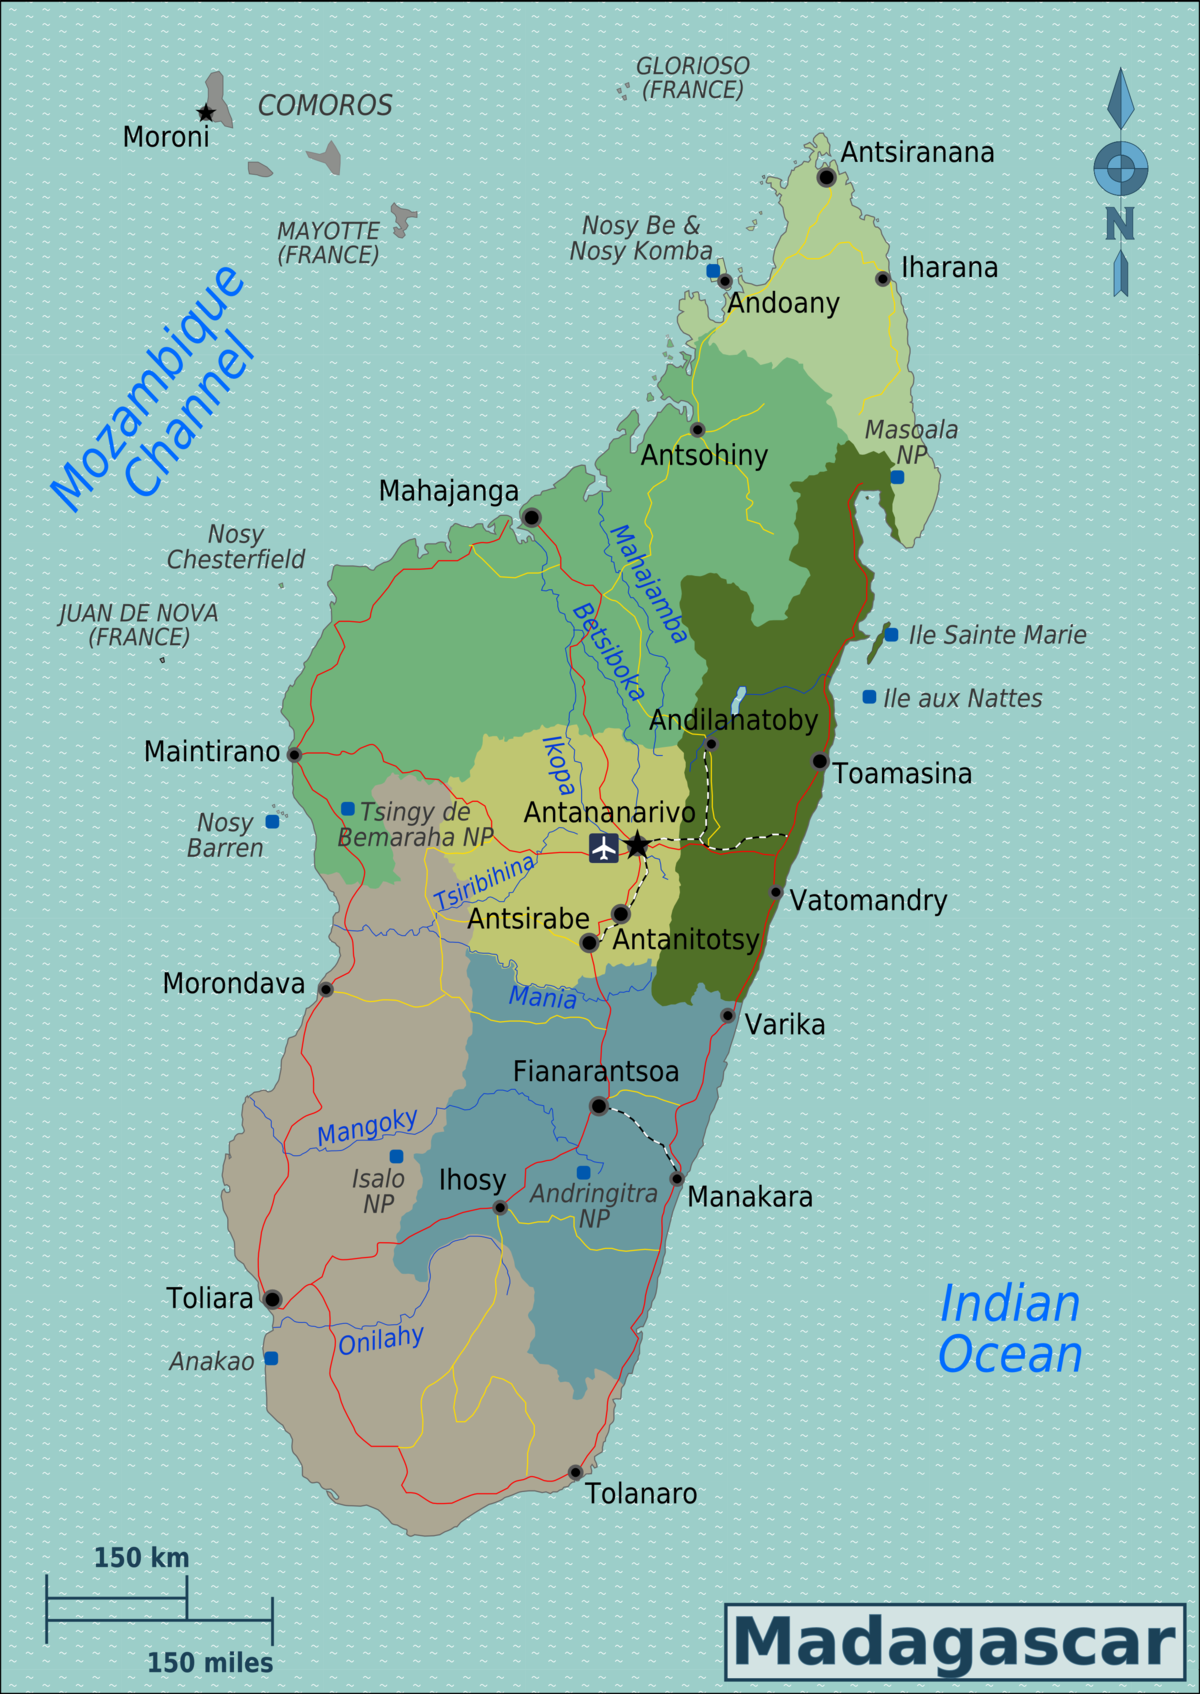 Madagascar Travel guide at Wikivoyage